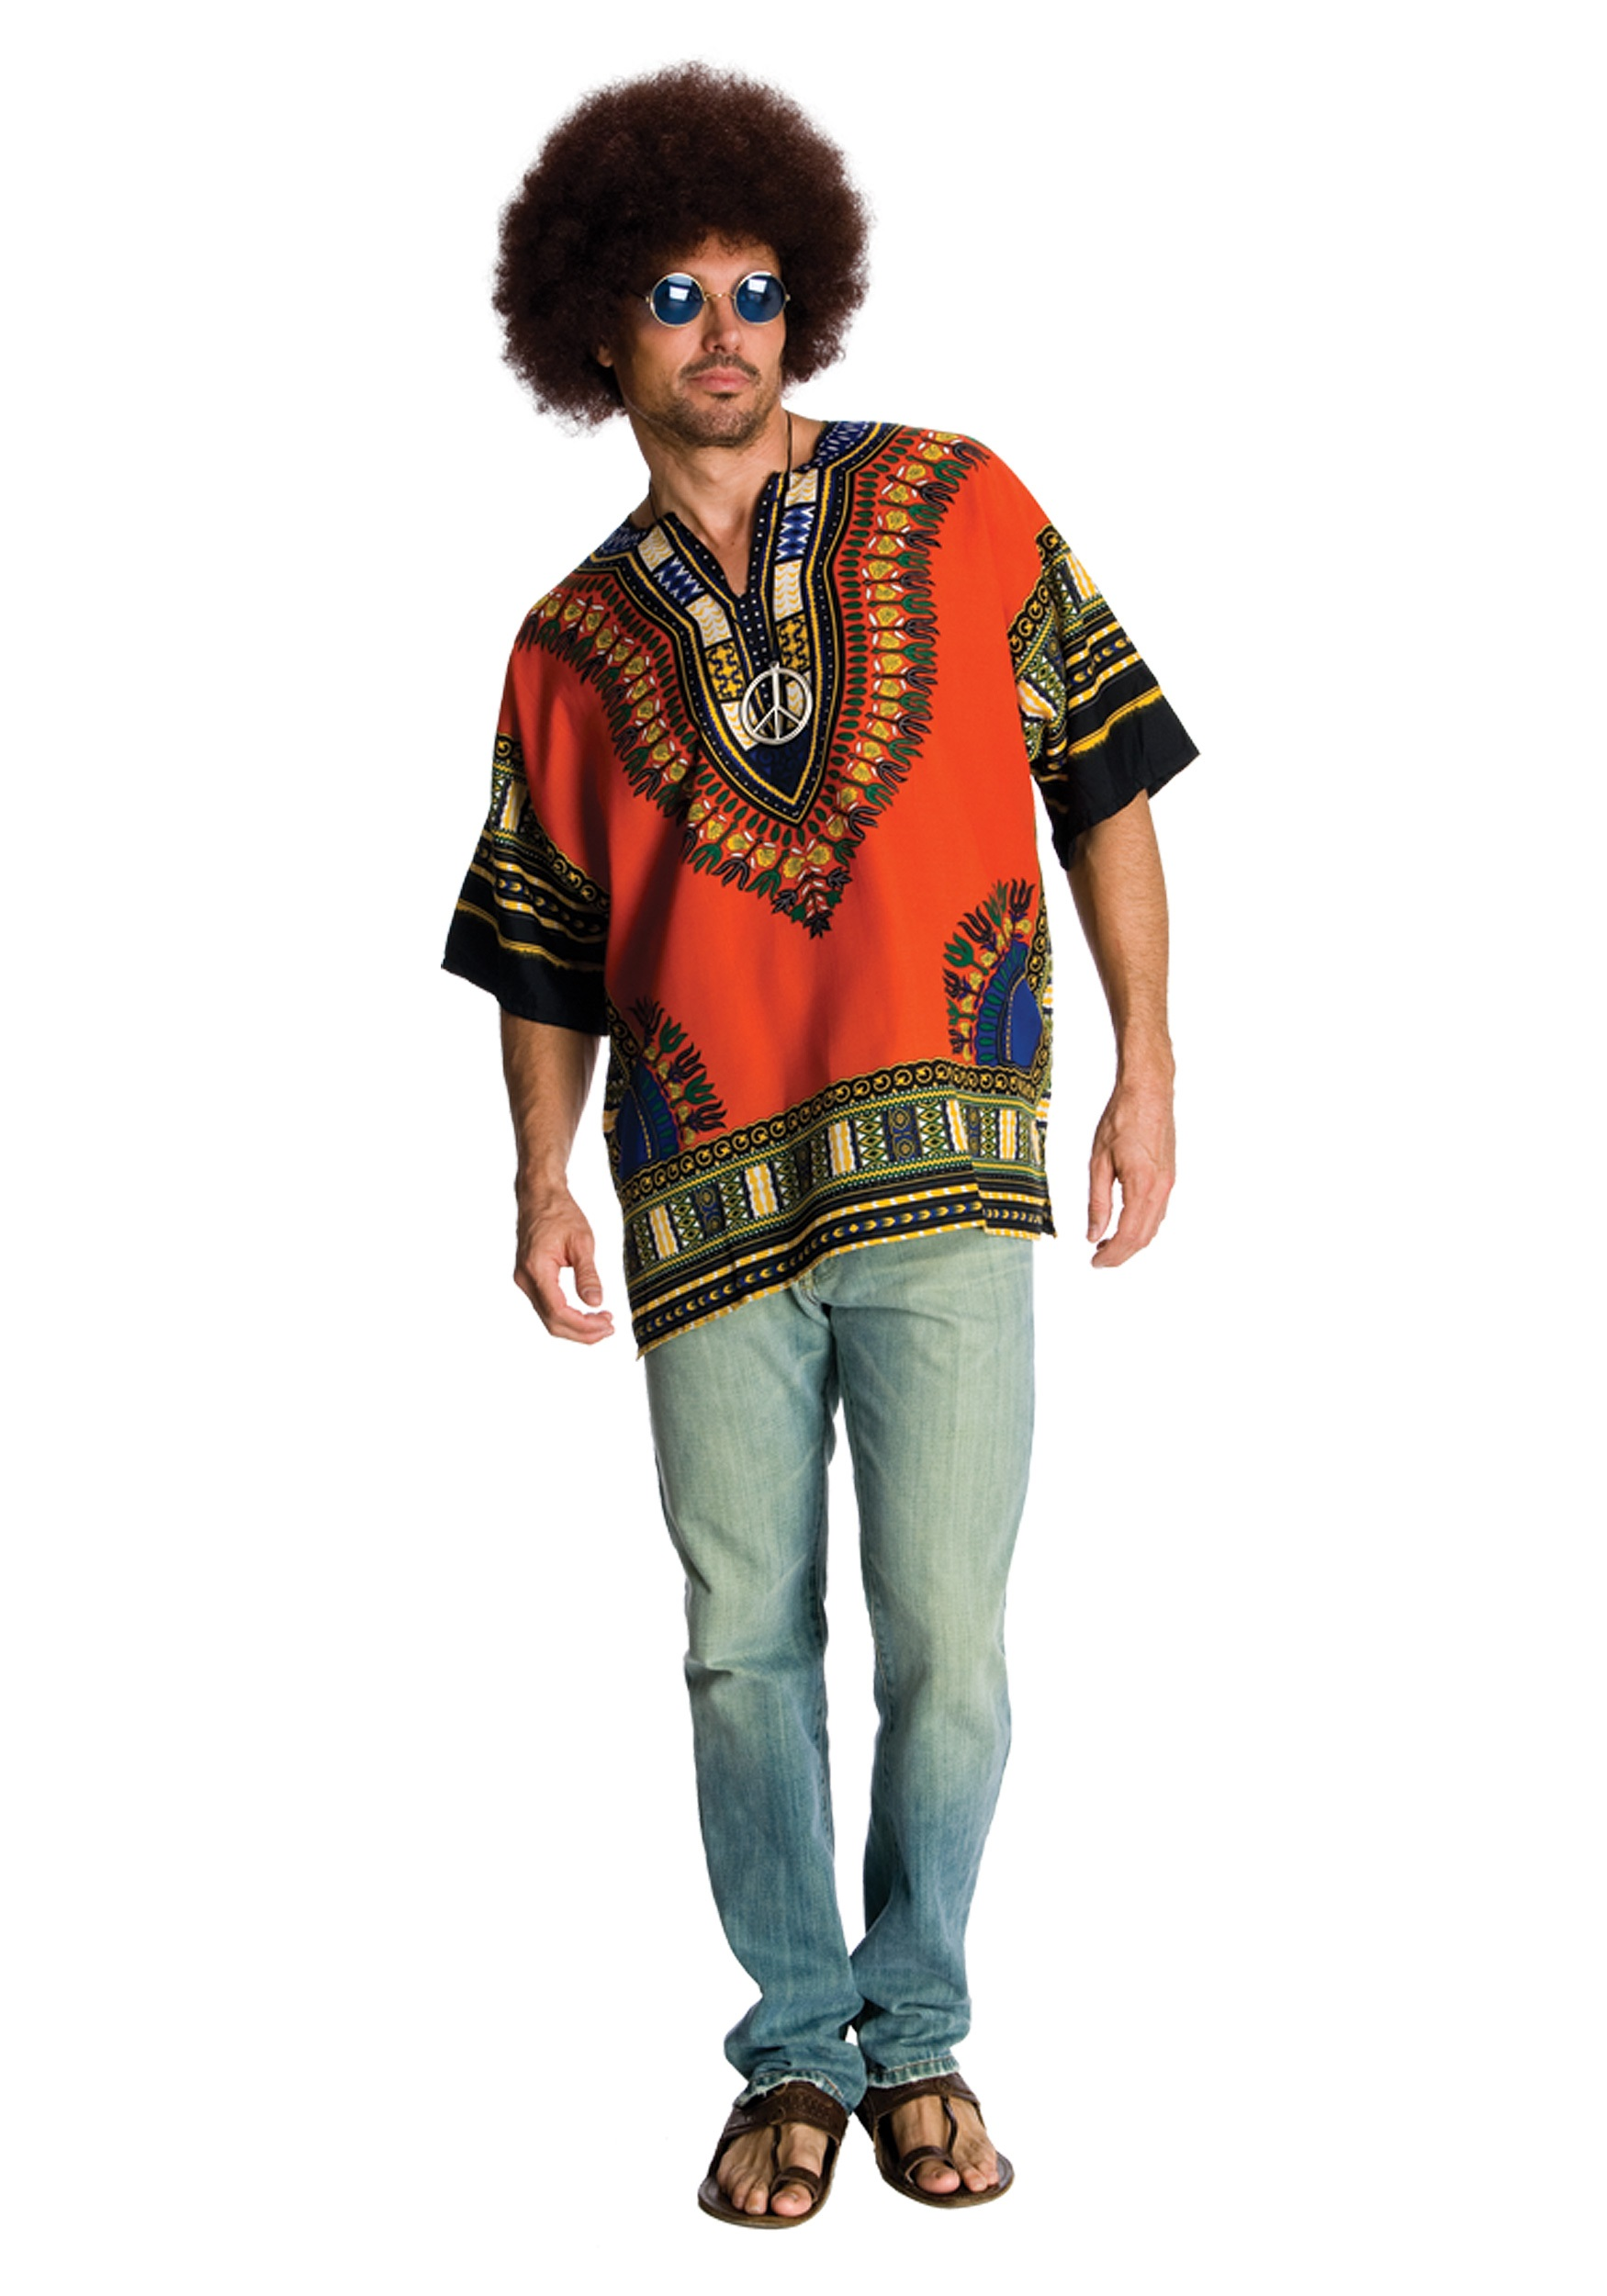 cool 60s hippie dude costume 1960s costumes mens costumes. Black Bedroom Furniture Sets. Home Design Ideas